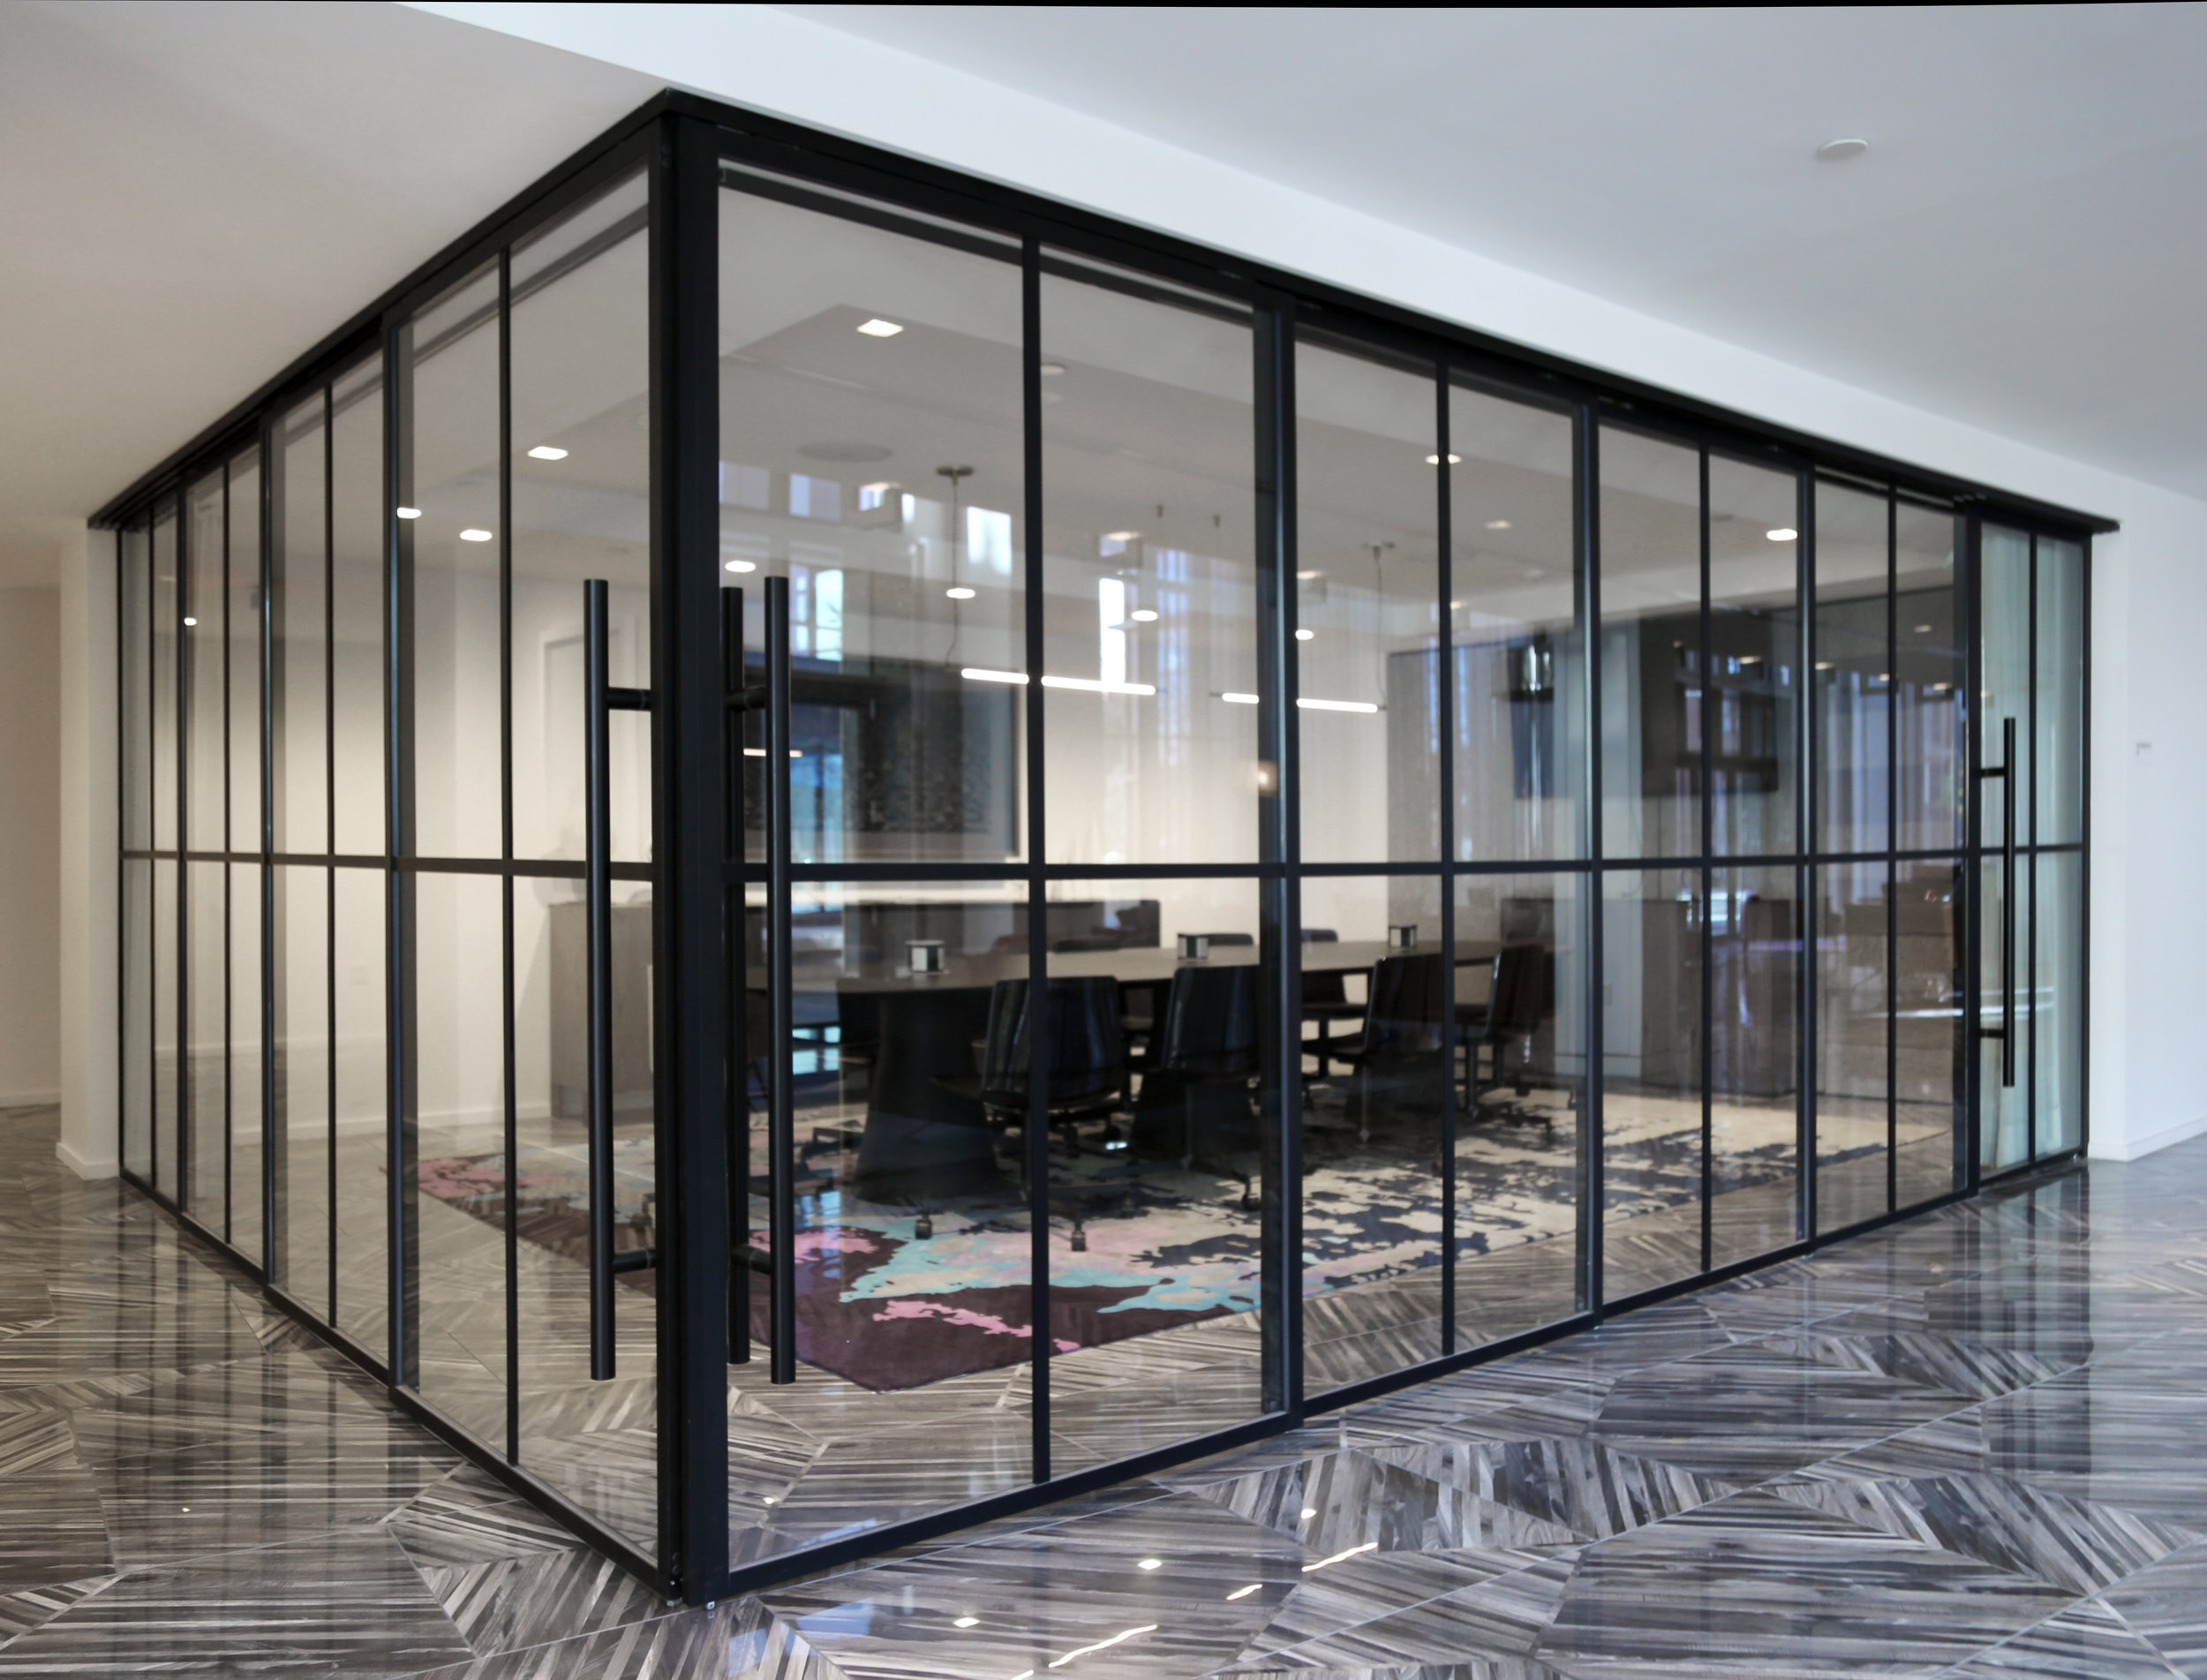 Modernus Telescoping Perpendicular Glass Wall Conference Room Closed - Spaceworks AI.jpg